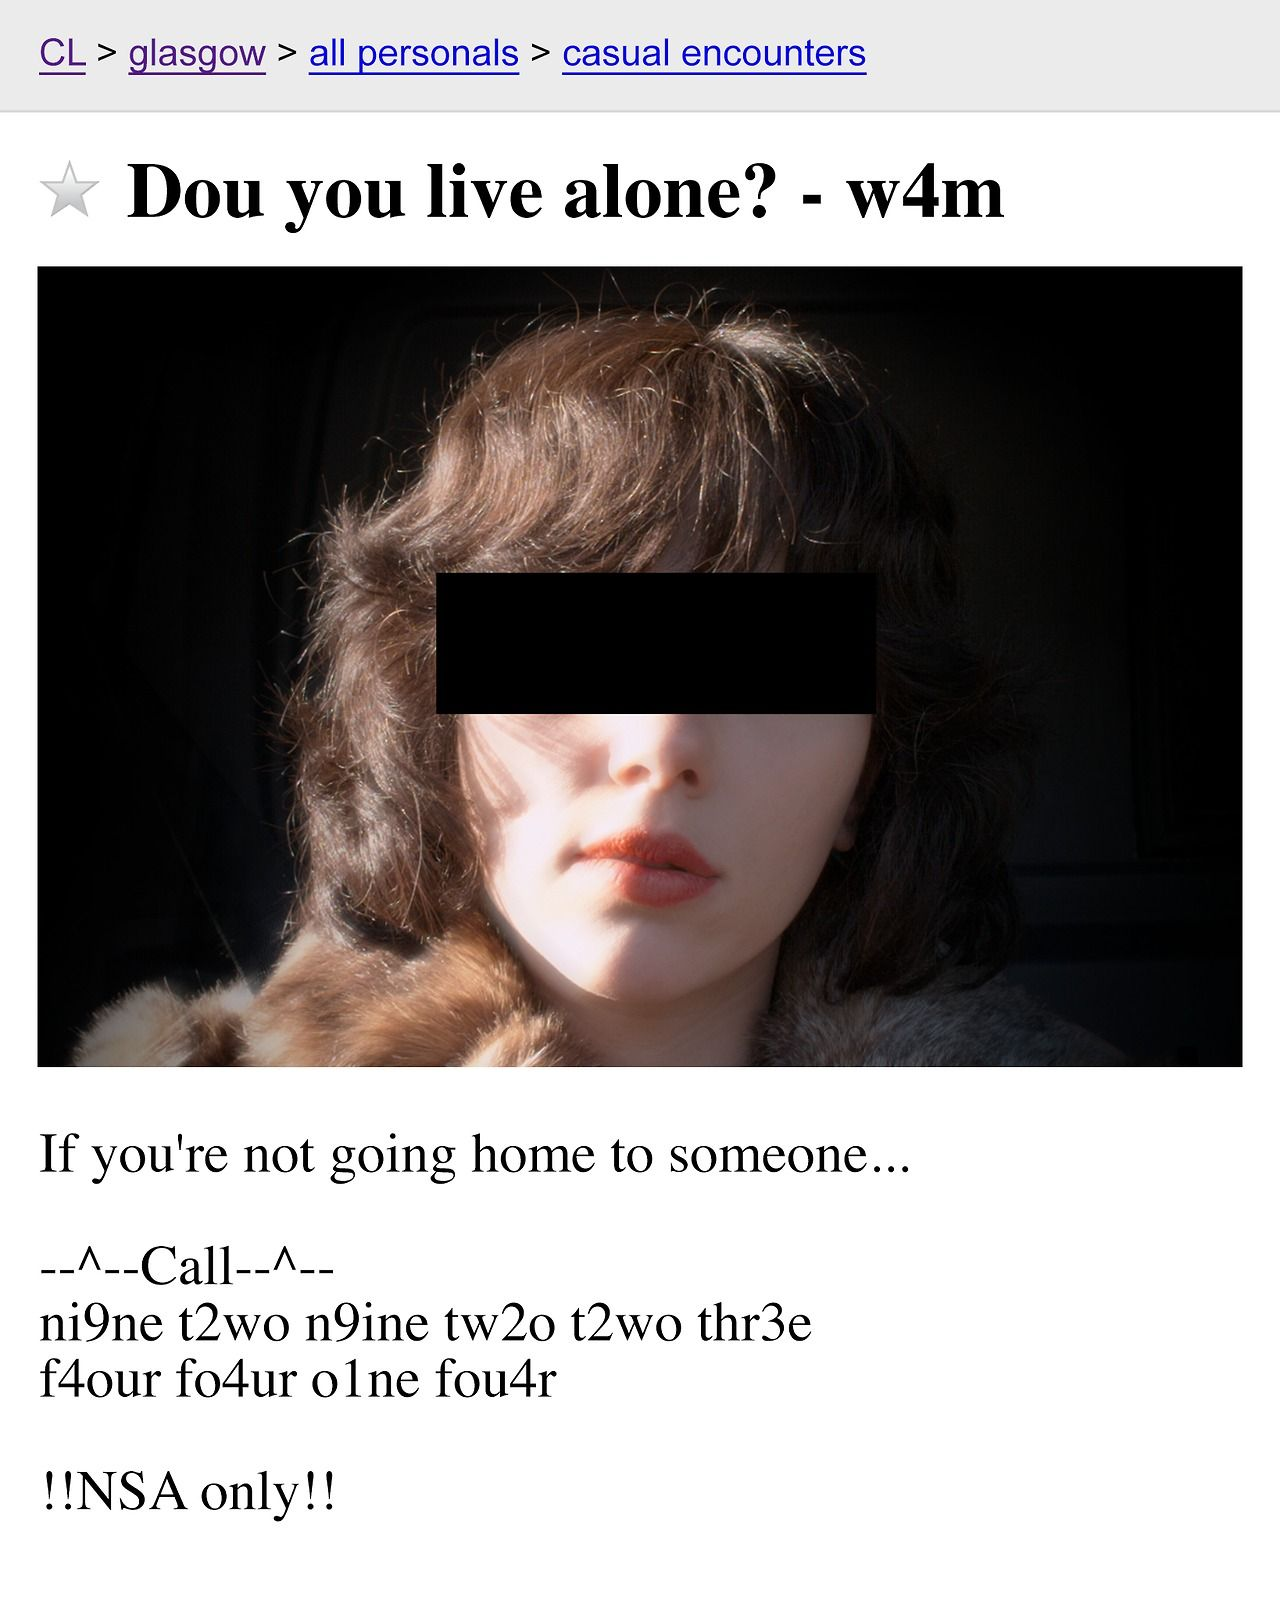 I have lived 24 yrs in Canada. I have given up on dating Canadian women.